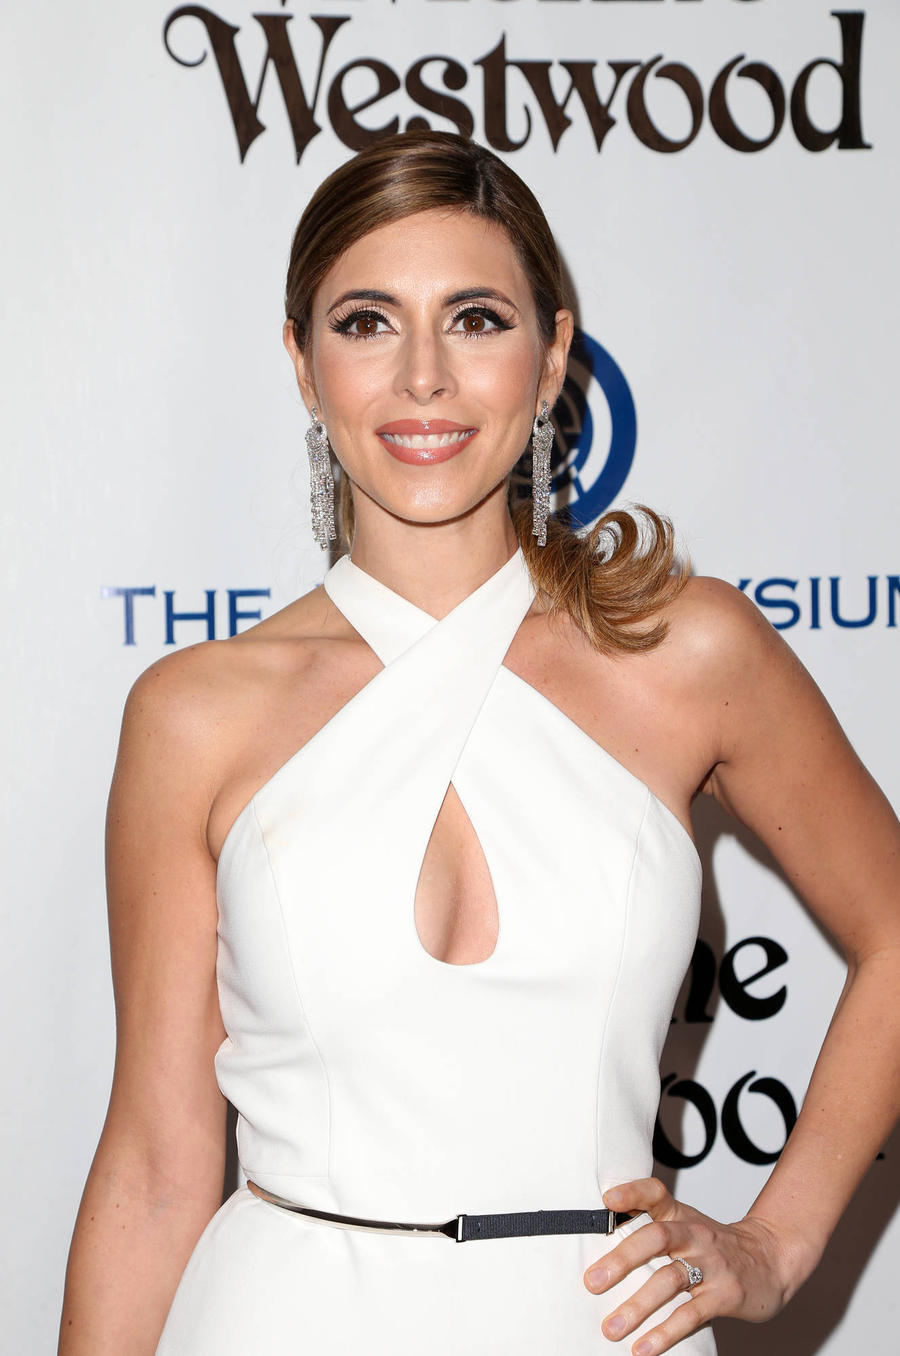 Jamie-lynn Sigler To Receive Top Charity Award